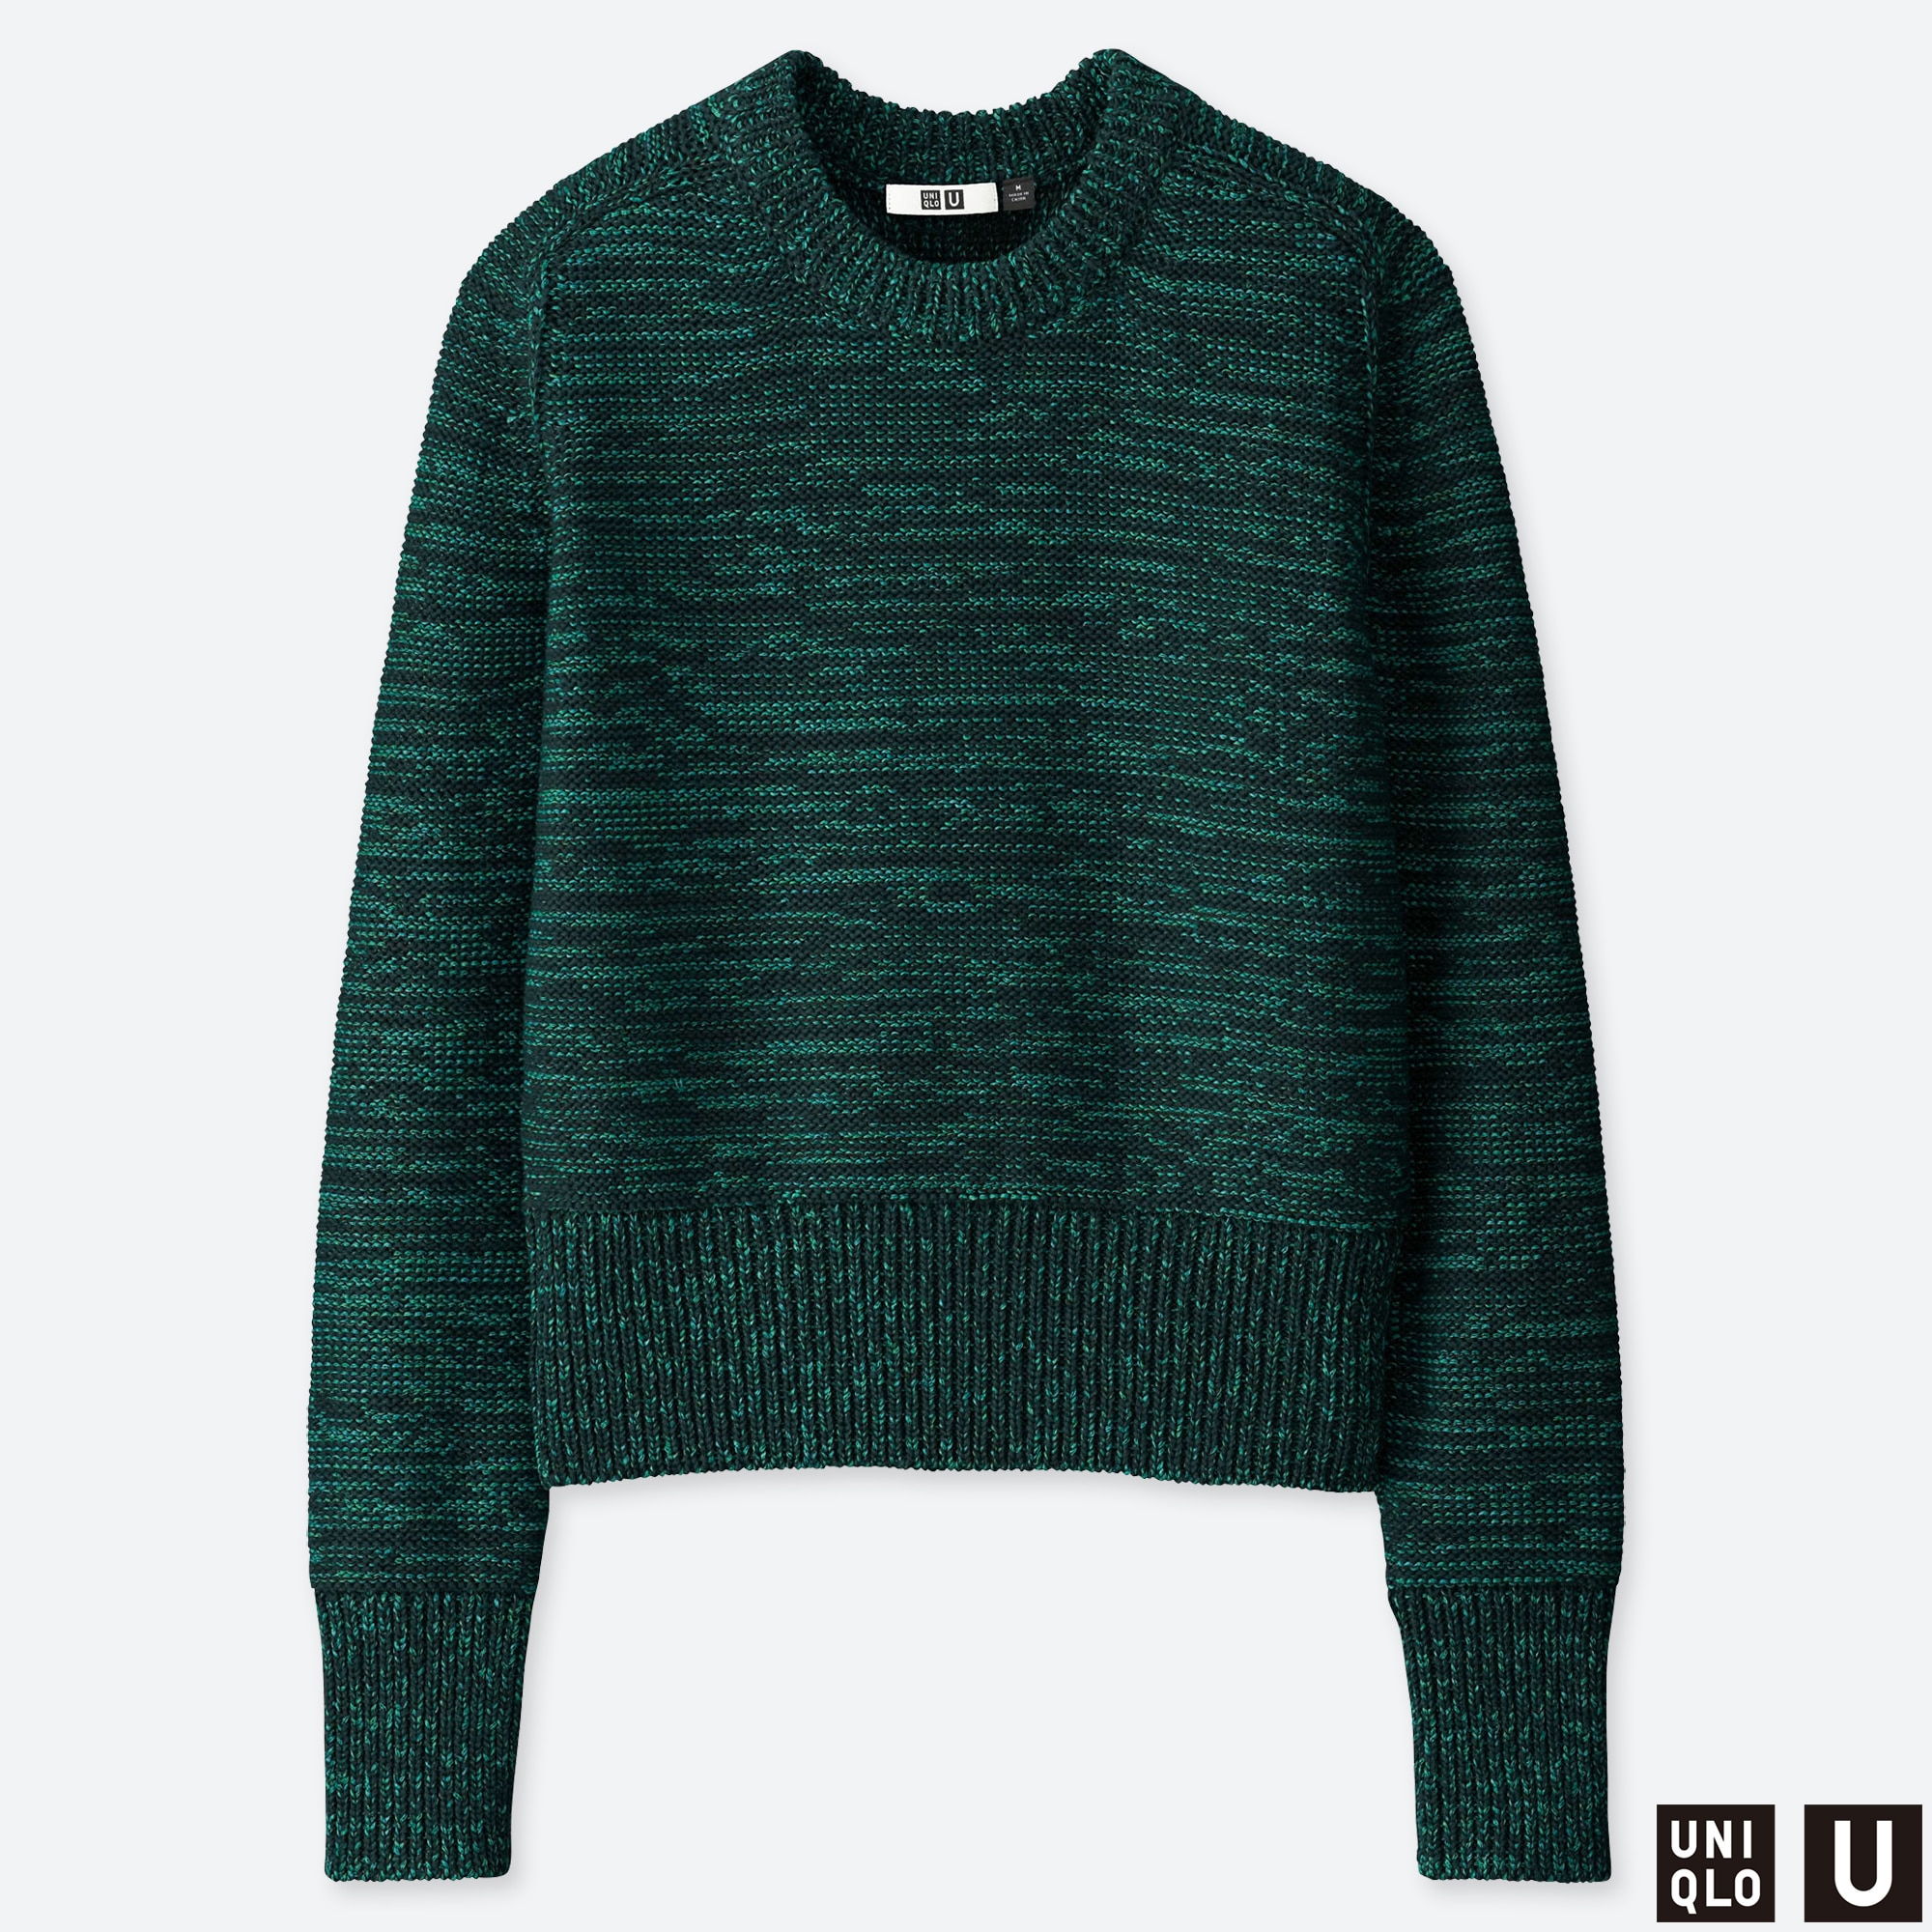 Womens V-neck Knitted Oversized Long Sleeve Loose Jumper Tops Knitwear Women's Clothing